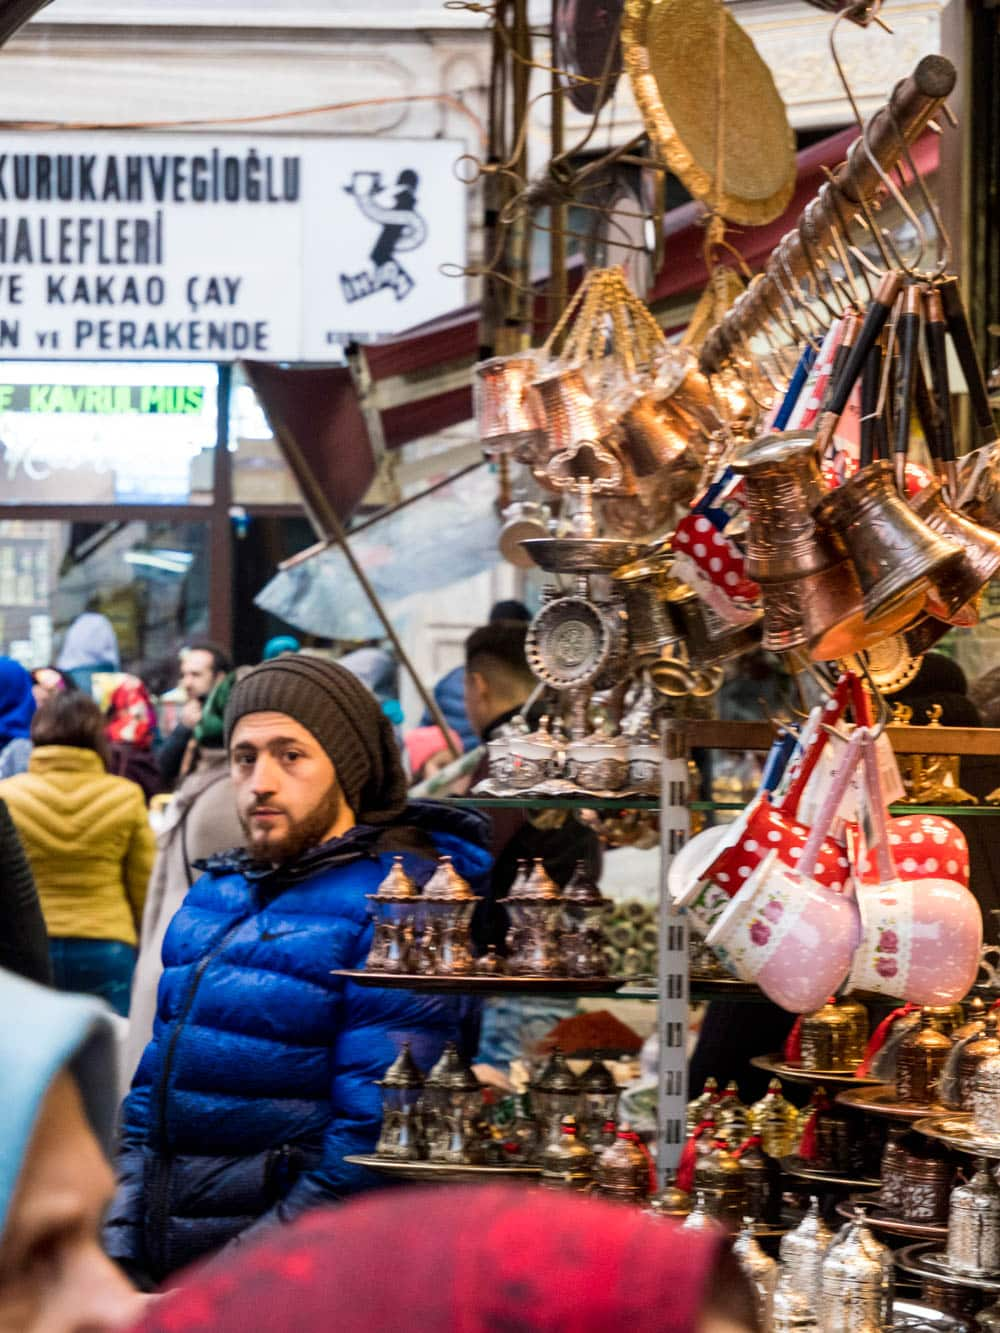 Trader at a stall for Turkish coffee and tea makers and accessories at the Istanbul spice market (Misir carsisi) / A kitchen in Istanbul